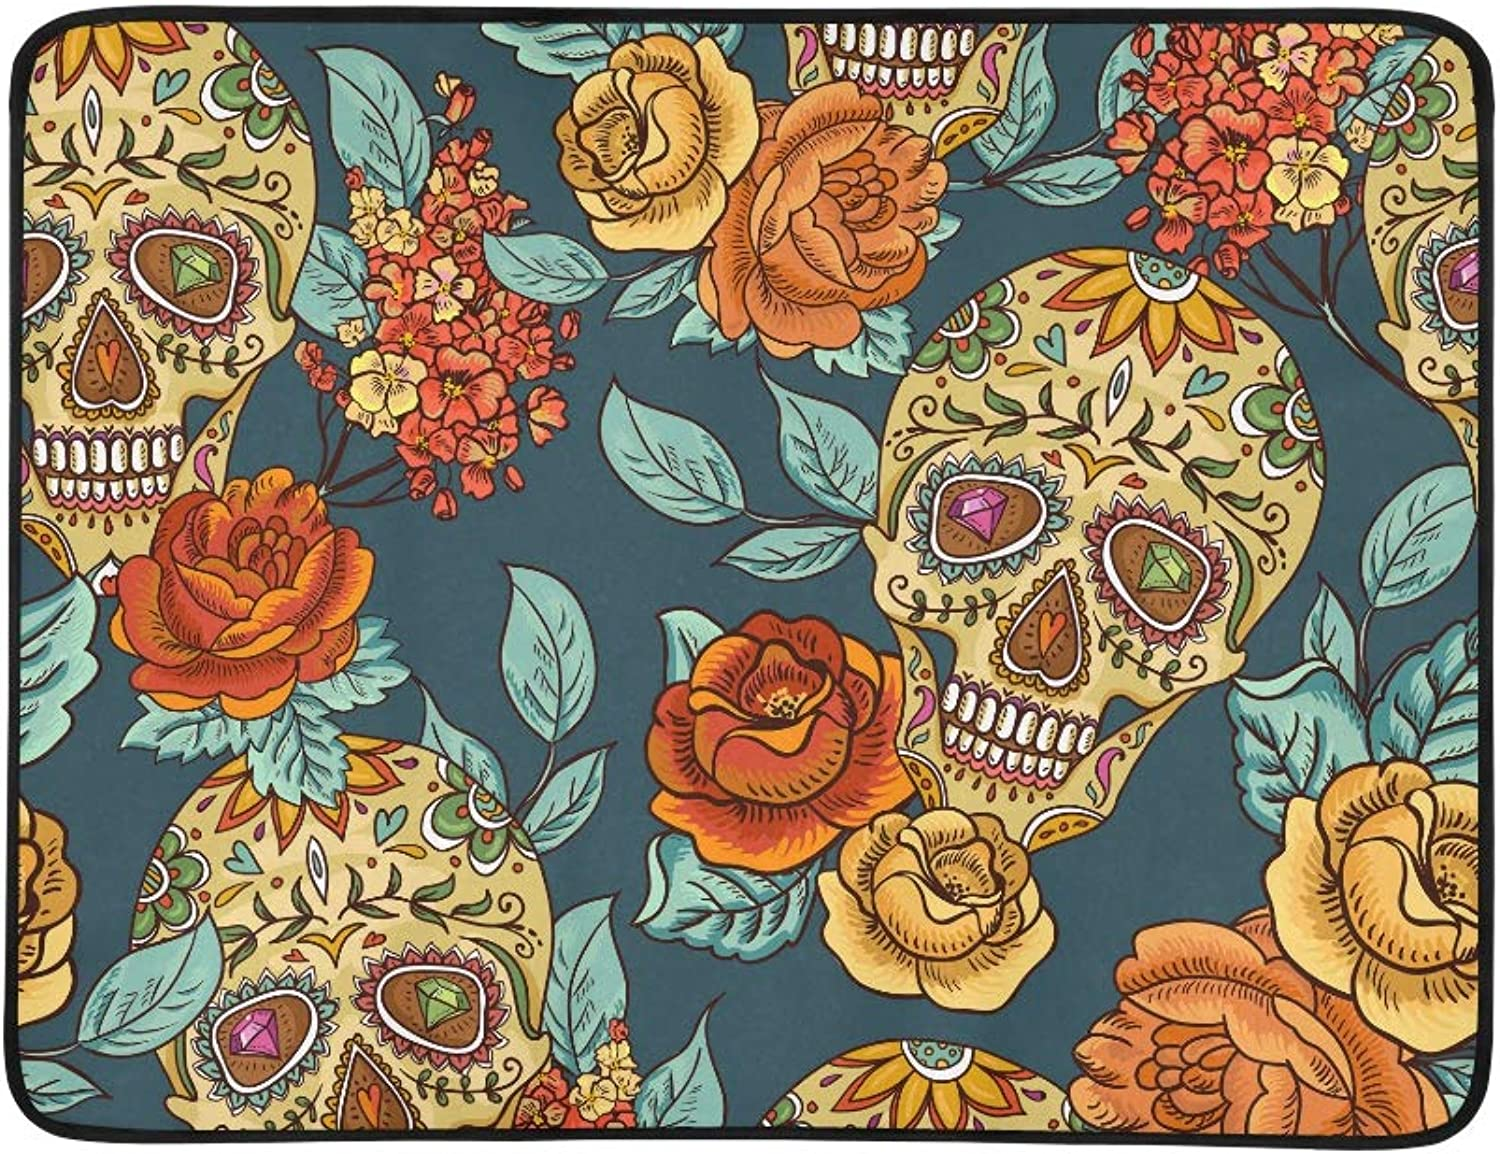 Dia De Los Muertos Skull N Flowers Pattern Portable and Foldable Blanket Mat 60x78 Inch Handy Mat for Camping Picnic Beach Indoor Outdoor Travel